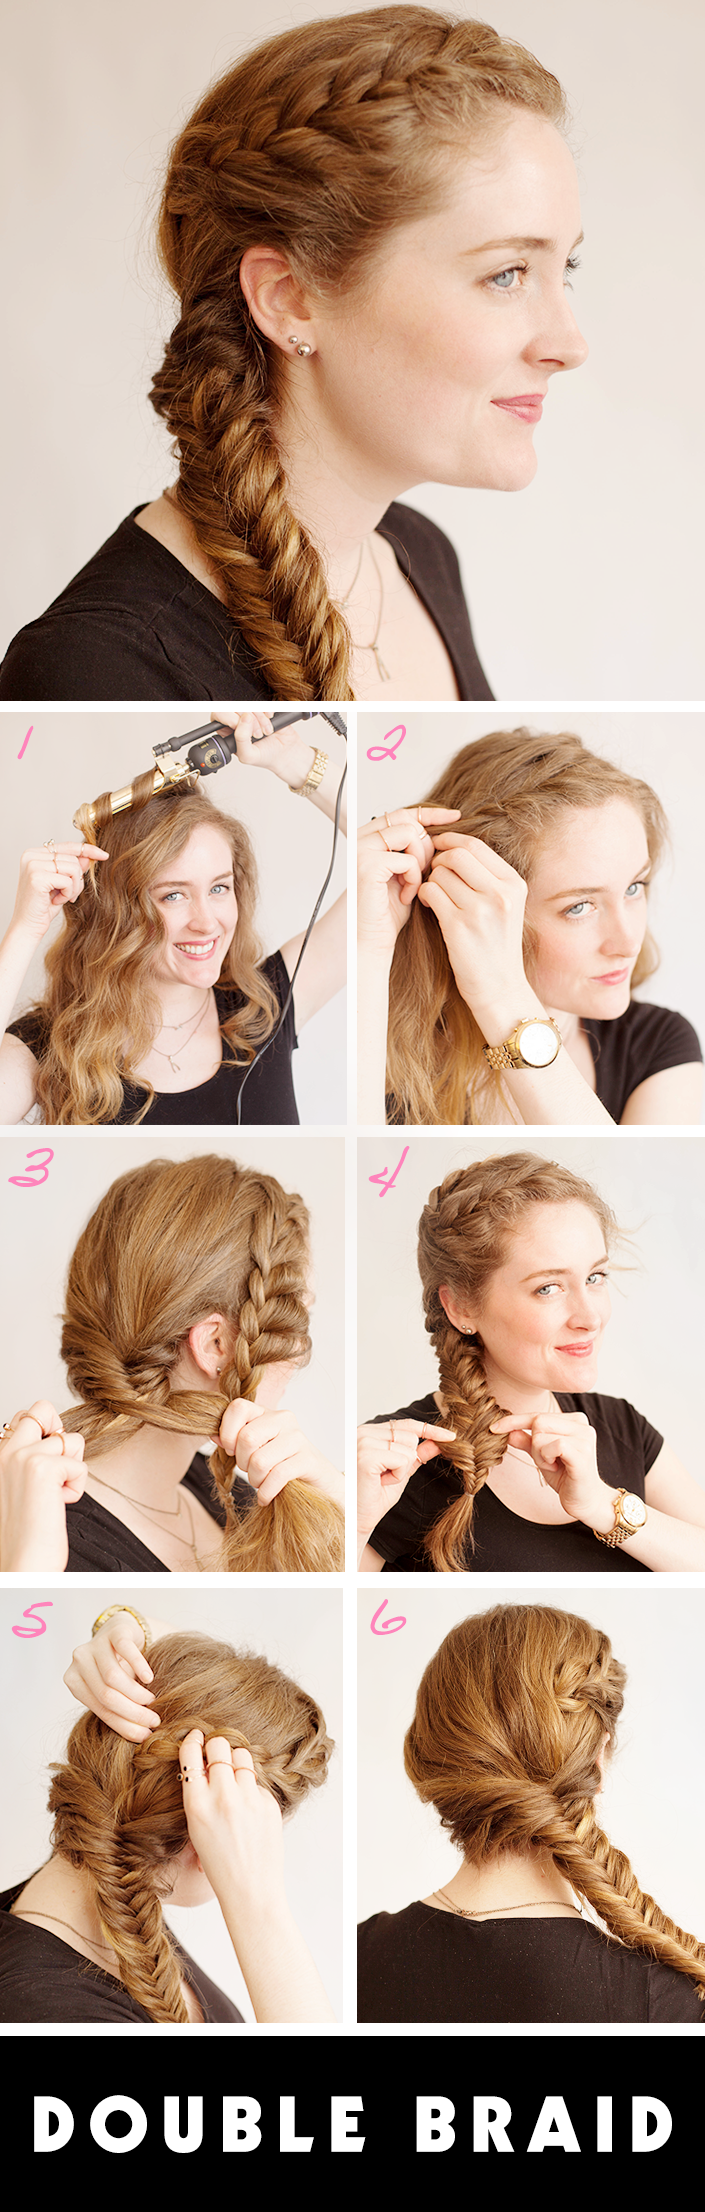 Braided Prom Hairstyles How To Get The Perfect Look For Prom